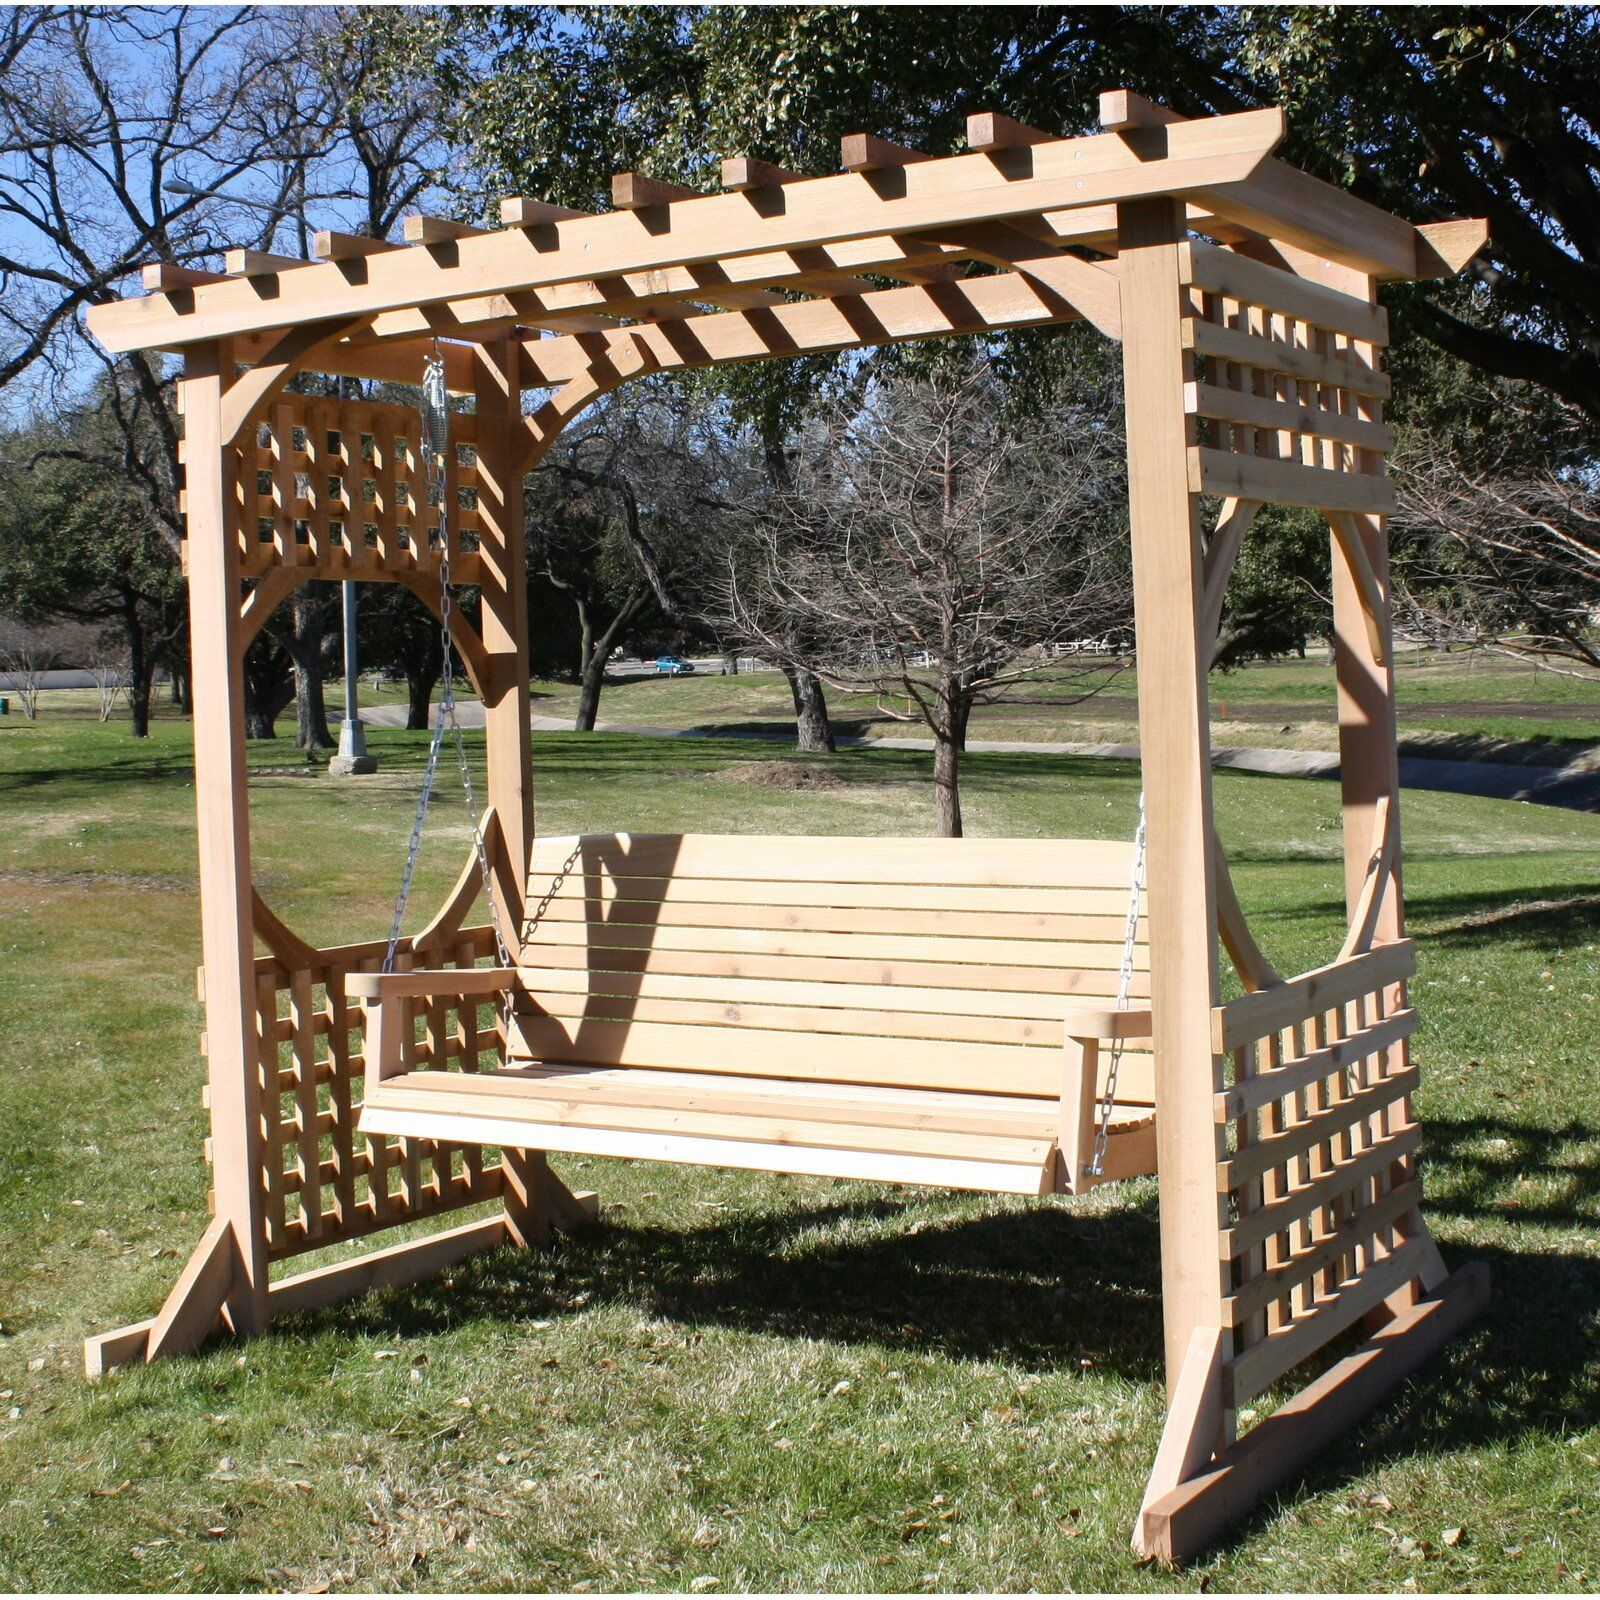 Donath Cedar Arbor Porch Swing With Stand In 2019 | Outdoors In Pergola Porch Swings With Stand (View 8 of 26)